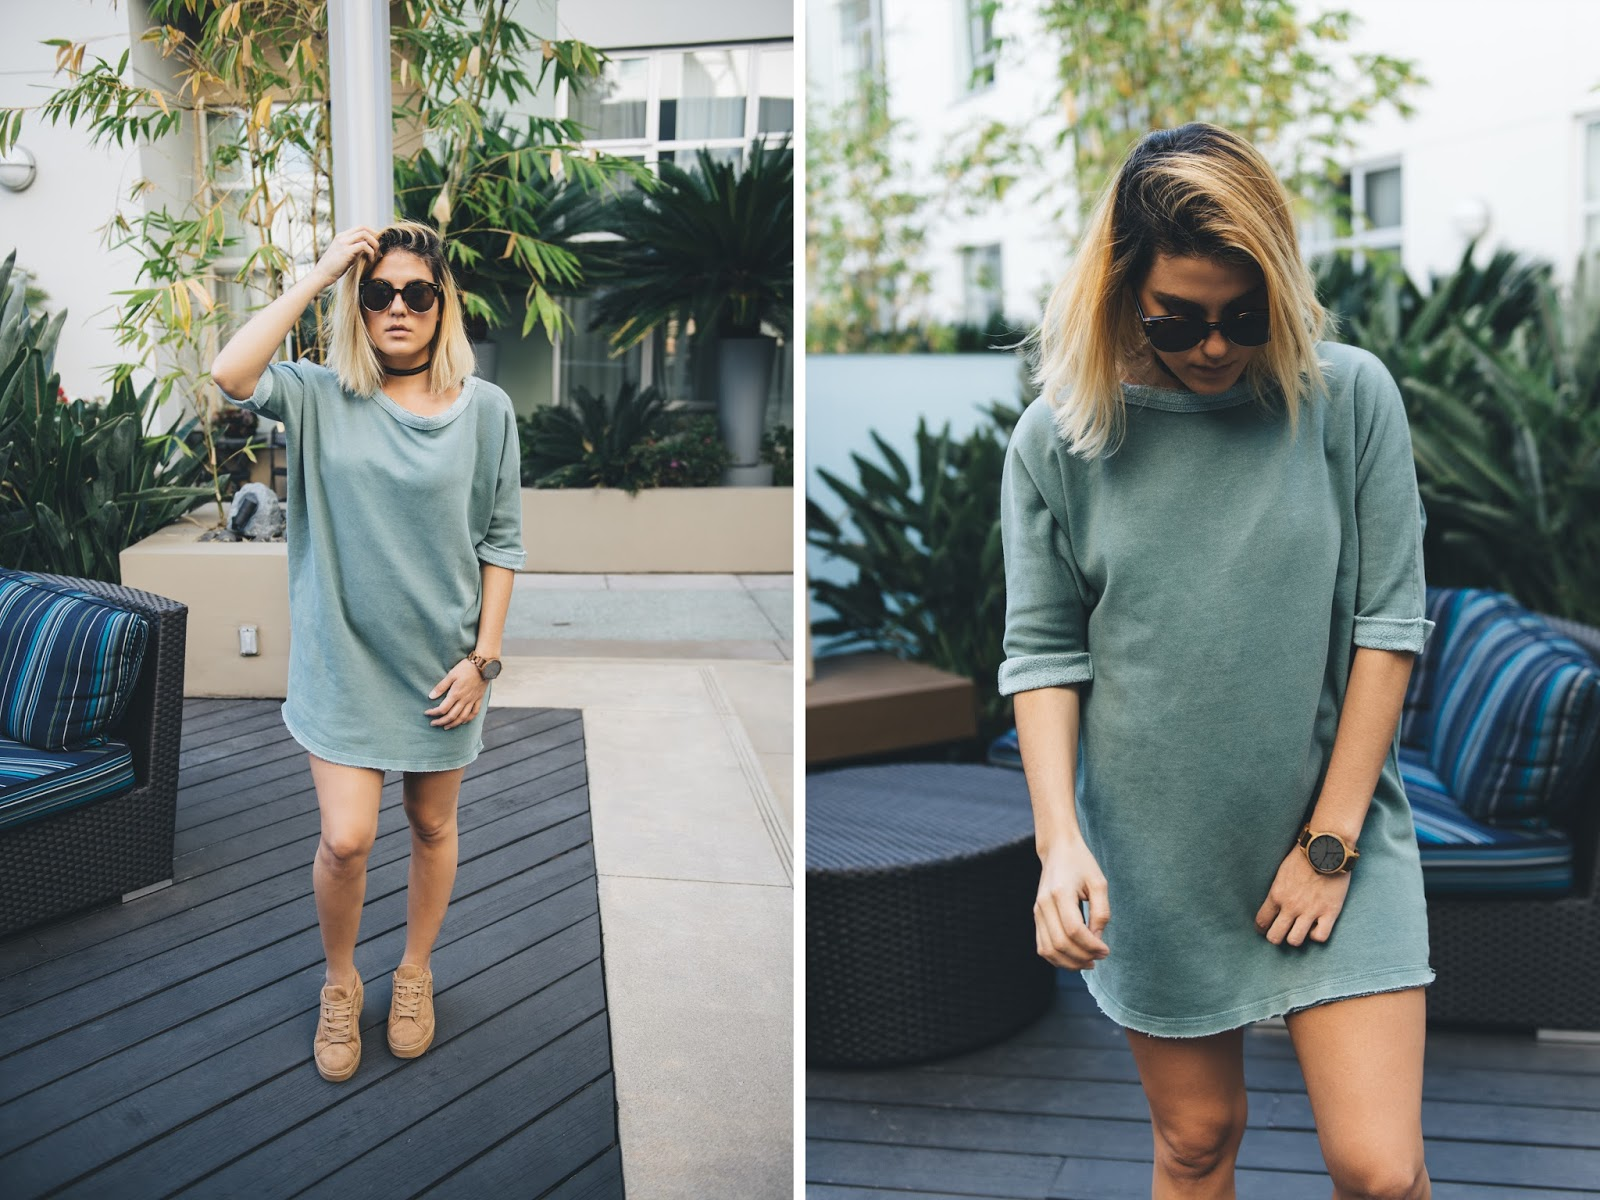 Fashion Blogger #ootd - @taylorwinkelmeyer